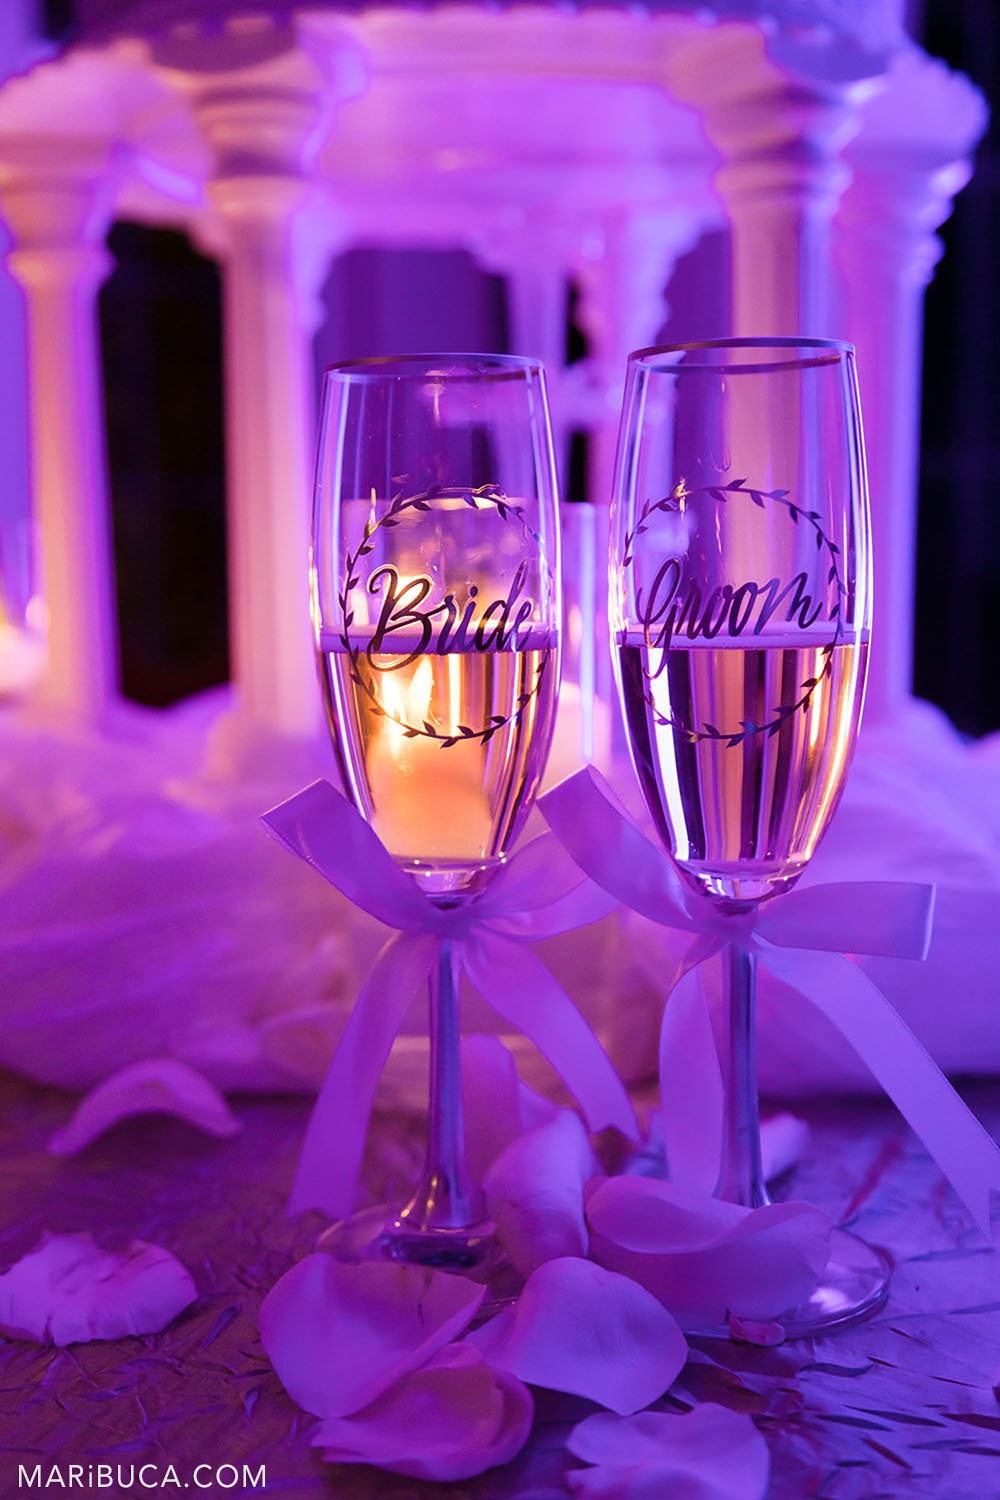 champagne glasses with the inscription: the bride and groom on a purple background